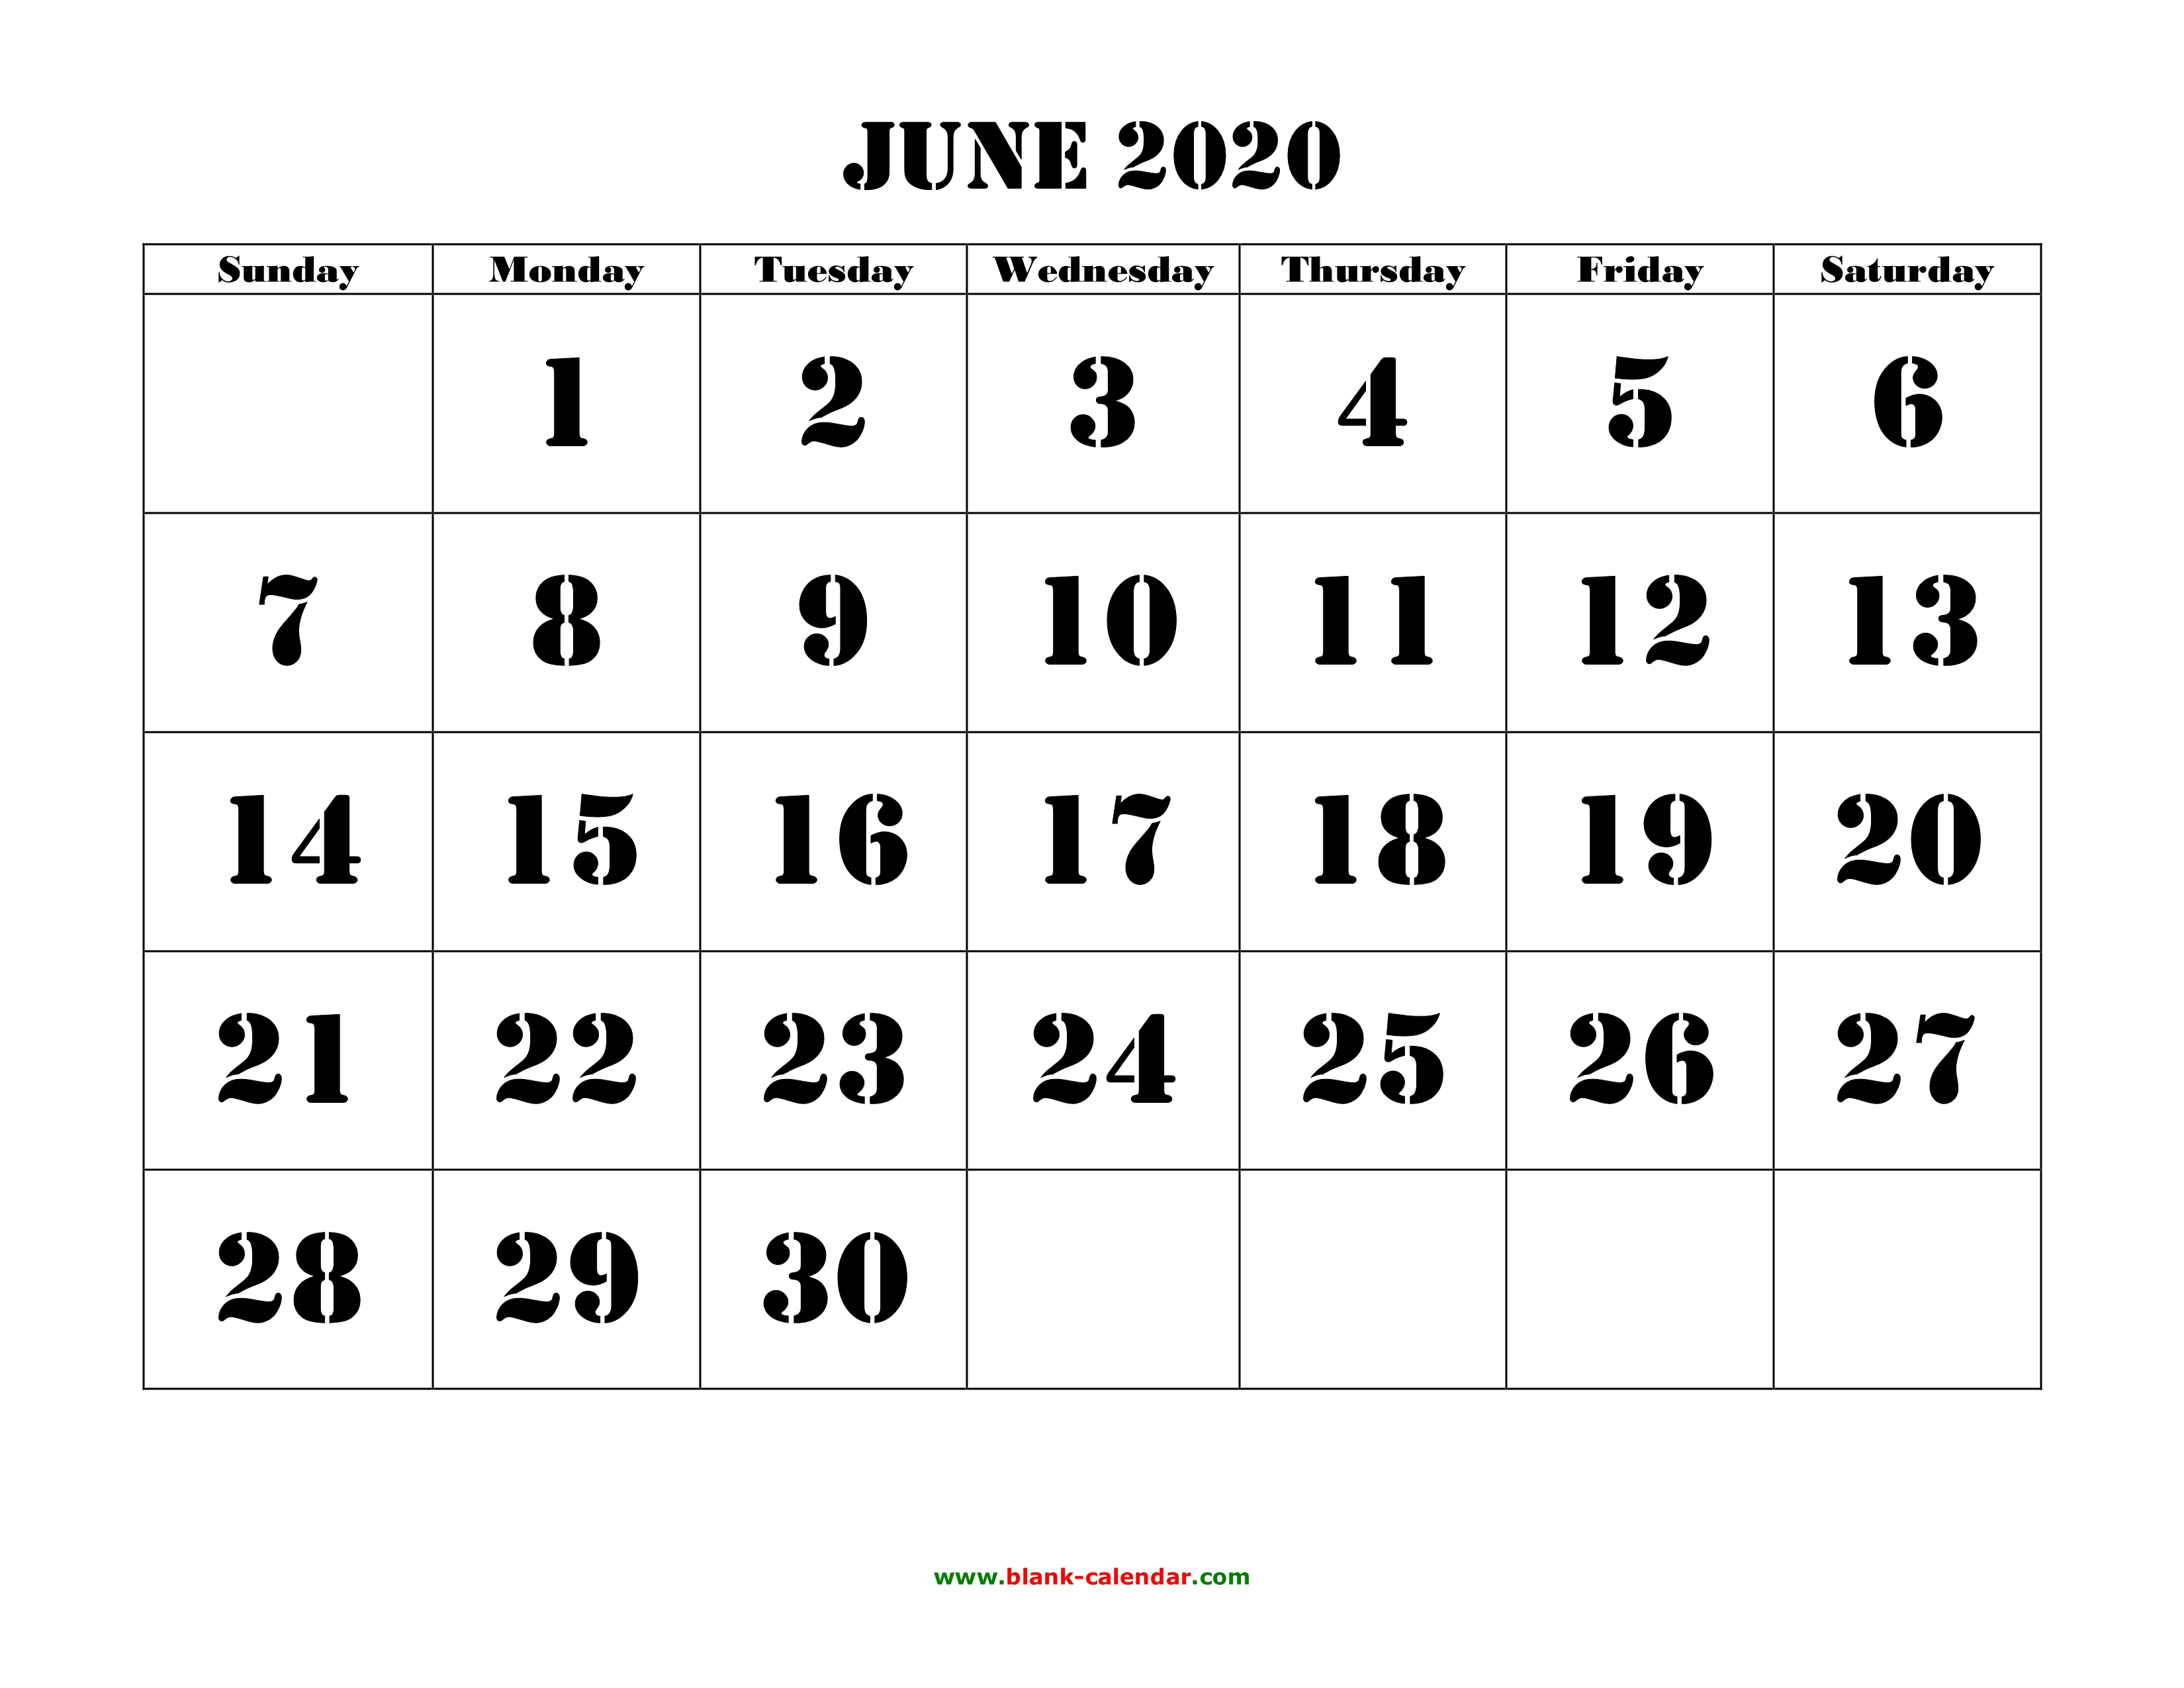 June 2020 Printable Calendar | Free Download Monthly Calendar Templates pertaining to 2020 Free Printable Calendar Large Numbers